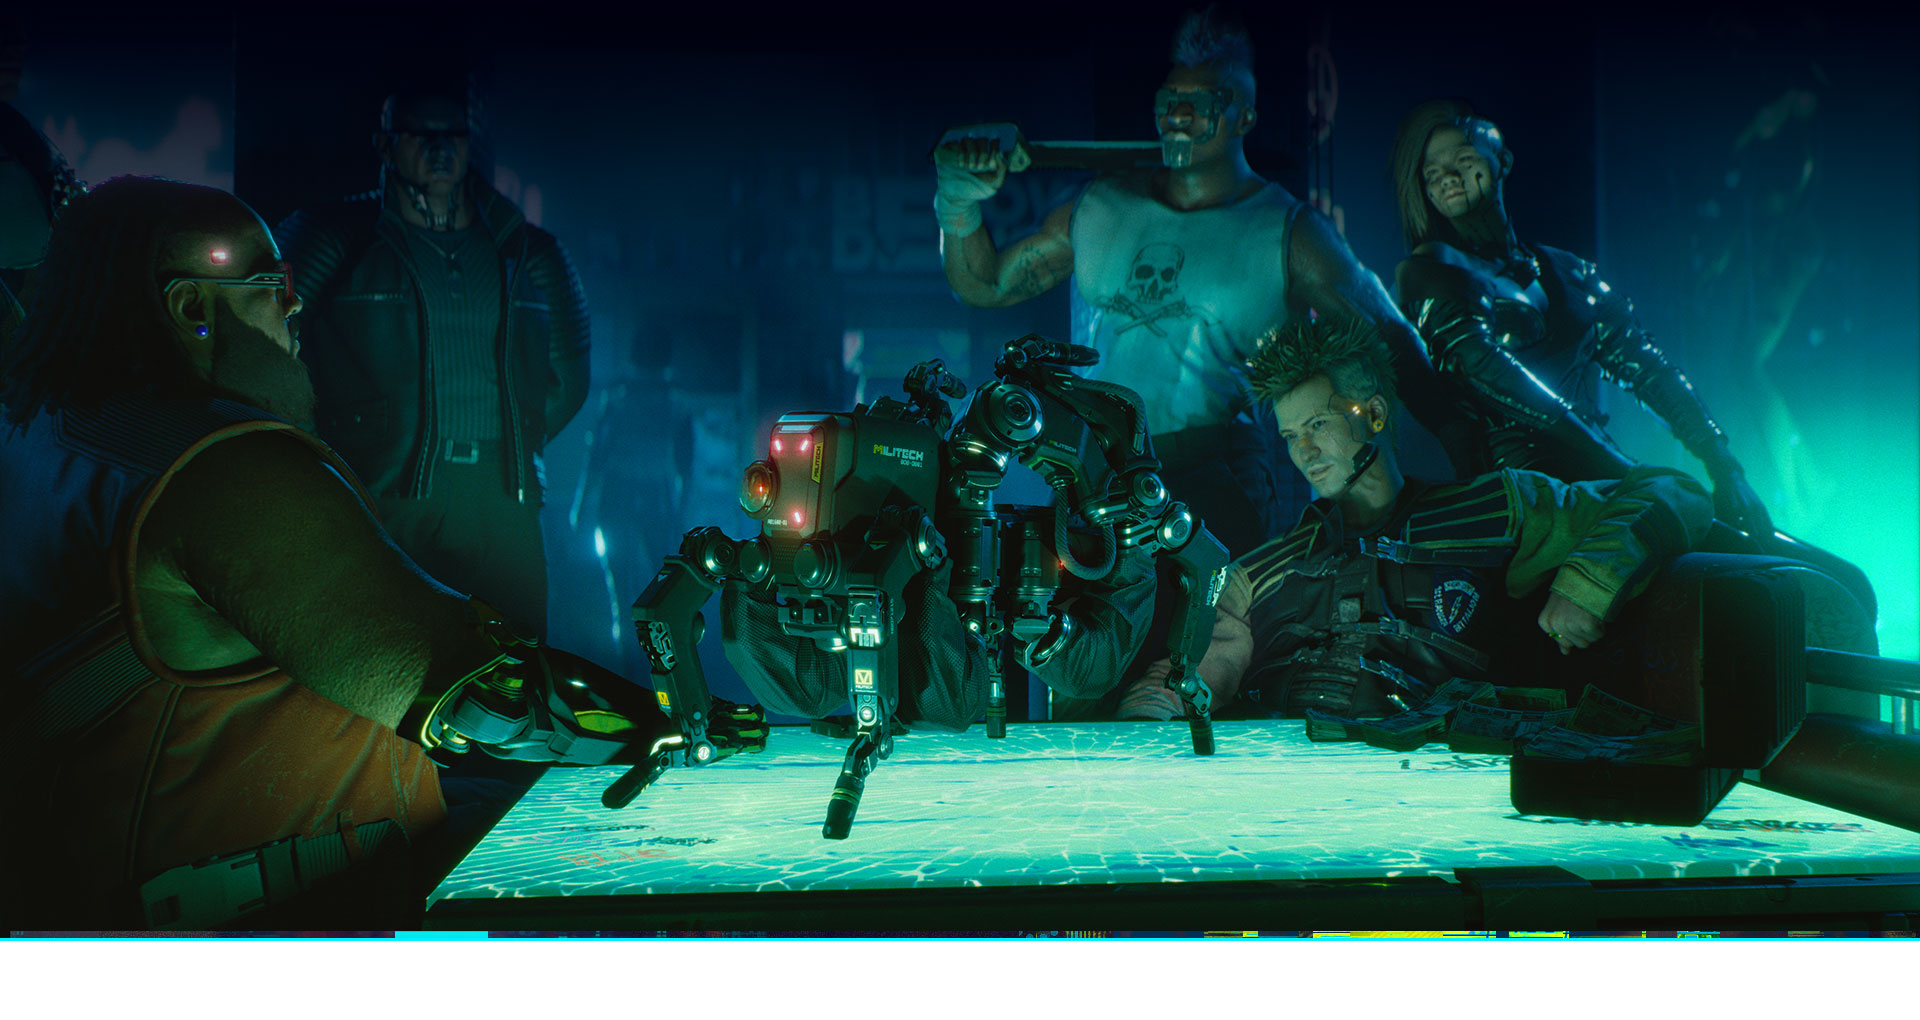 A group of cybernetic humans looking at a spider-like drone on a table